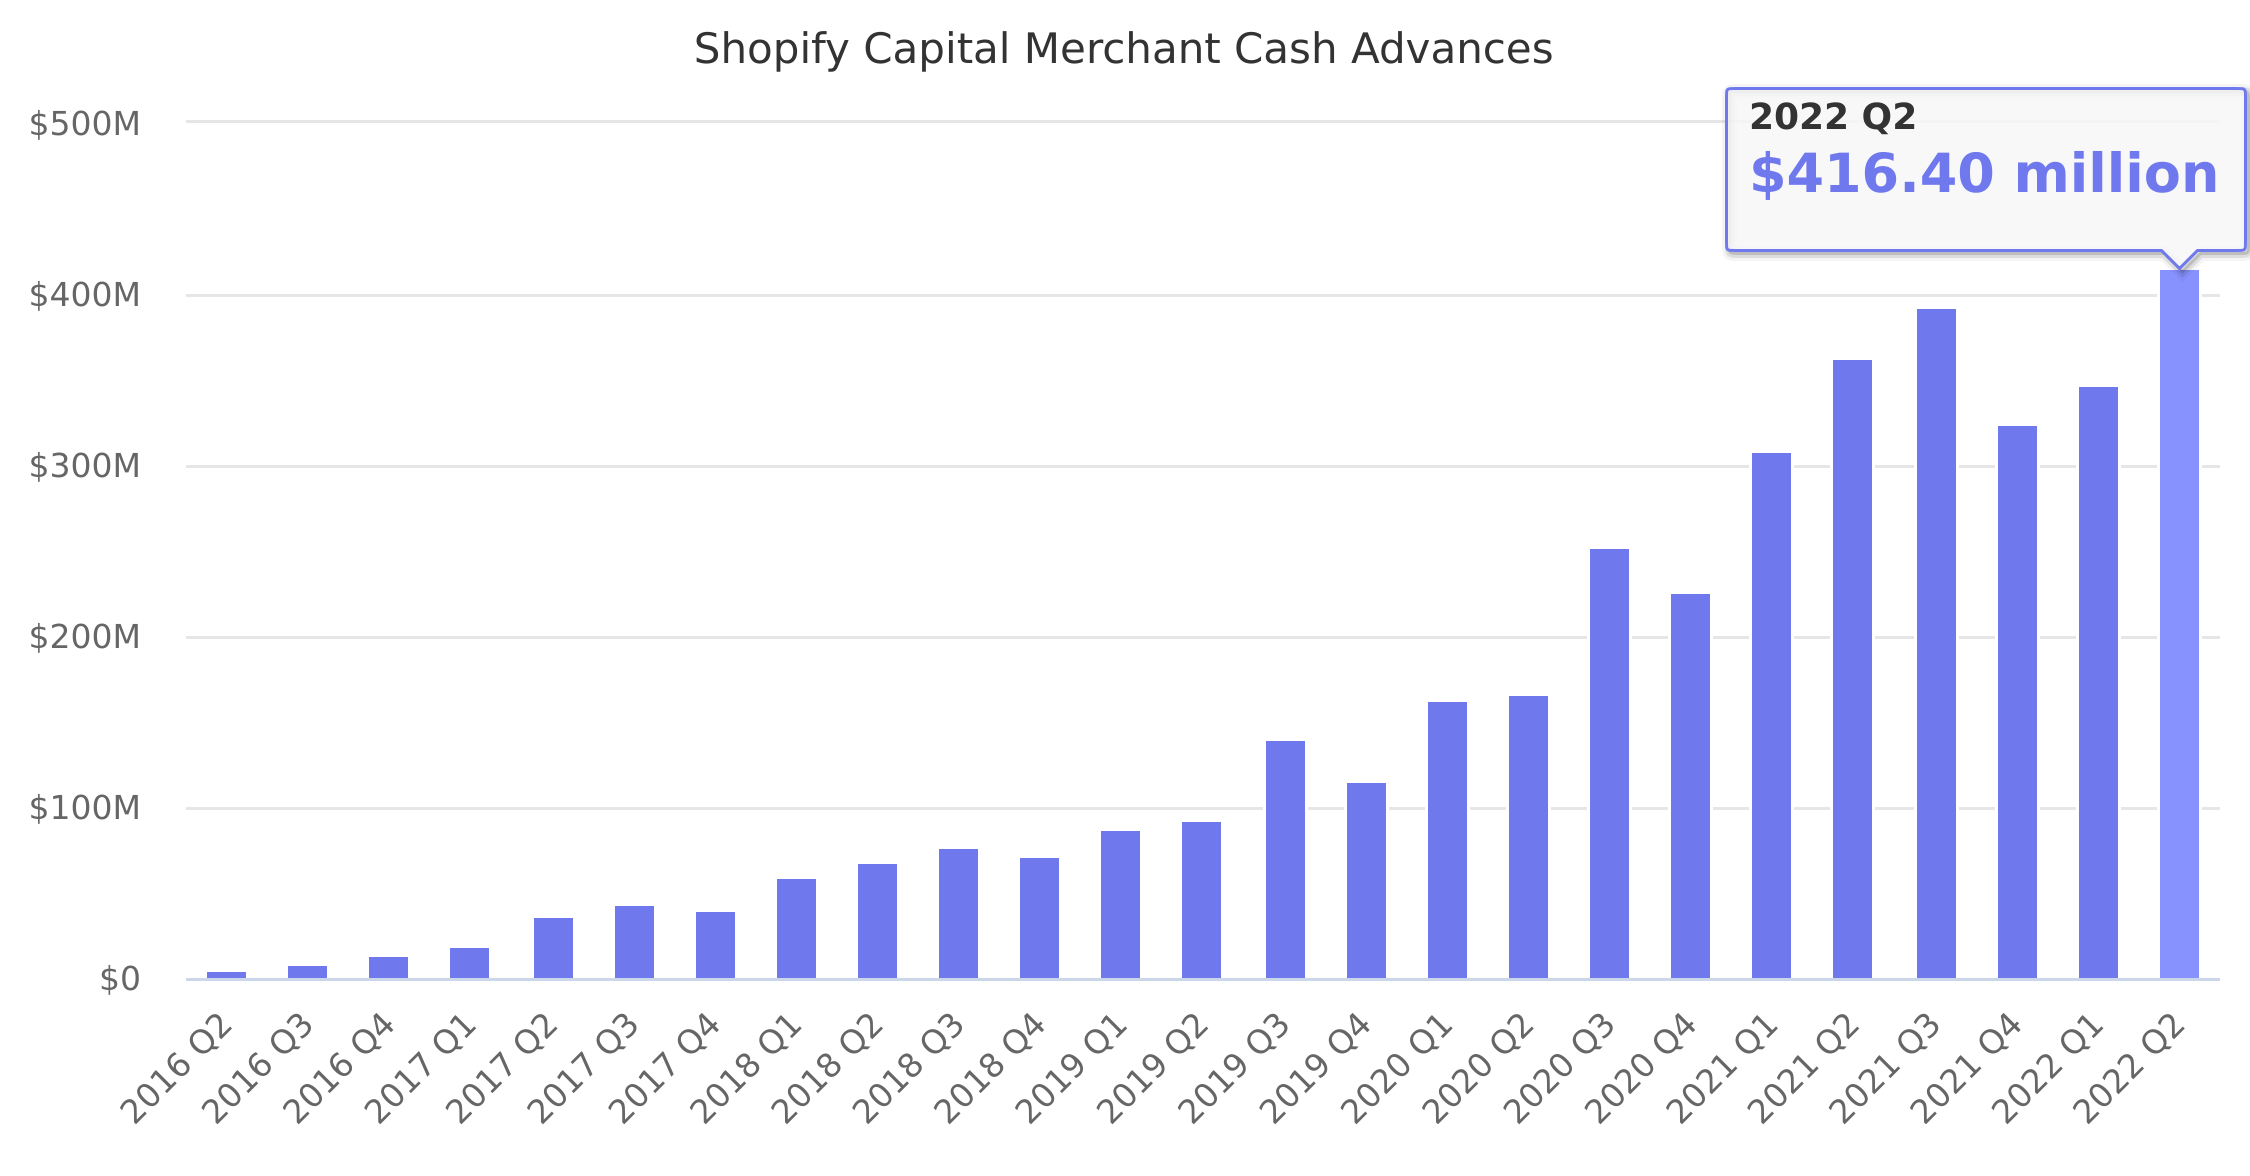 Shopify Capital Merchant Cash Advances